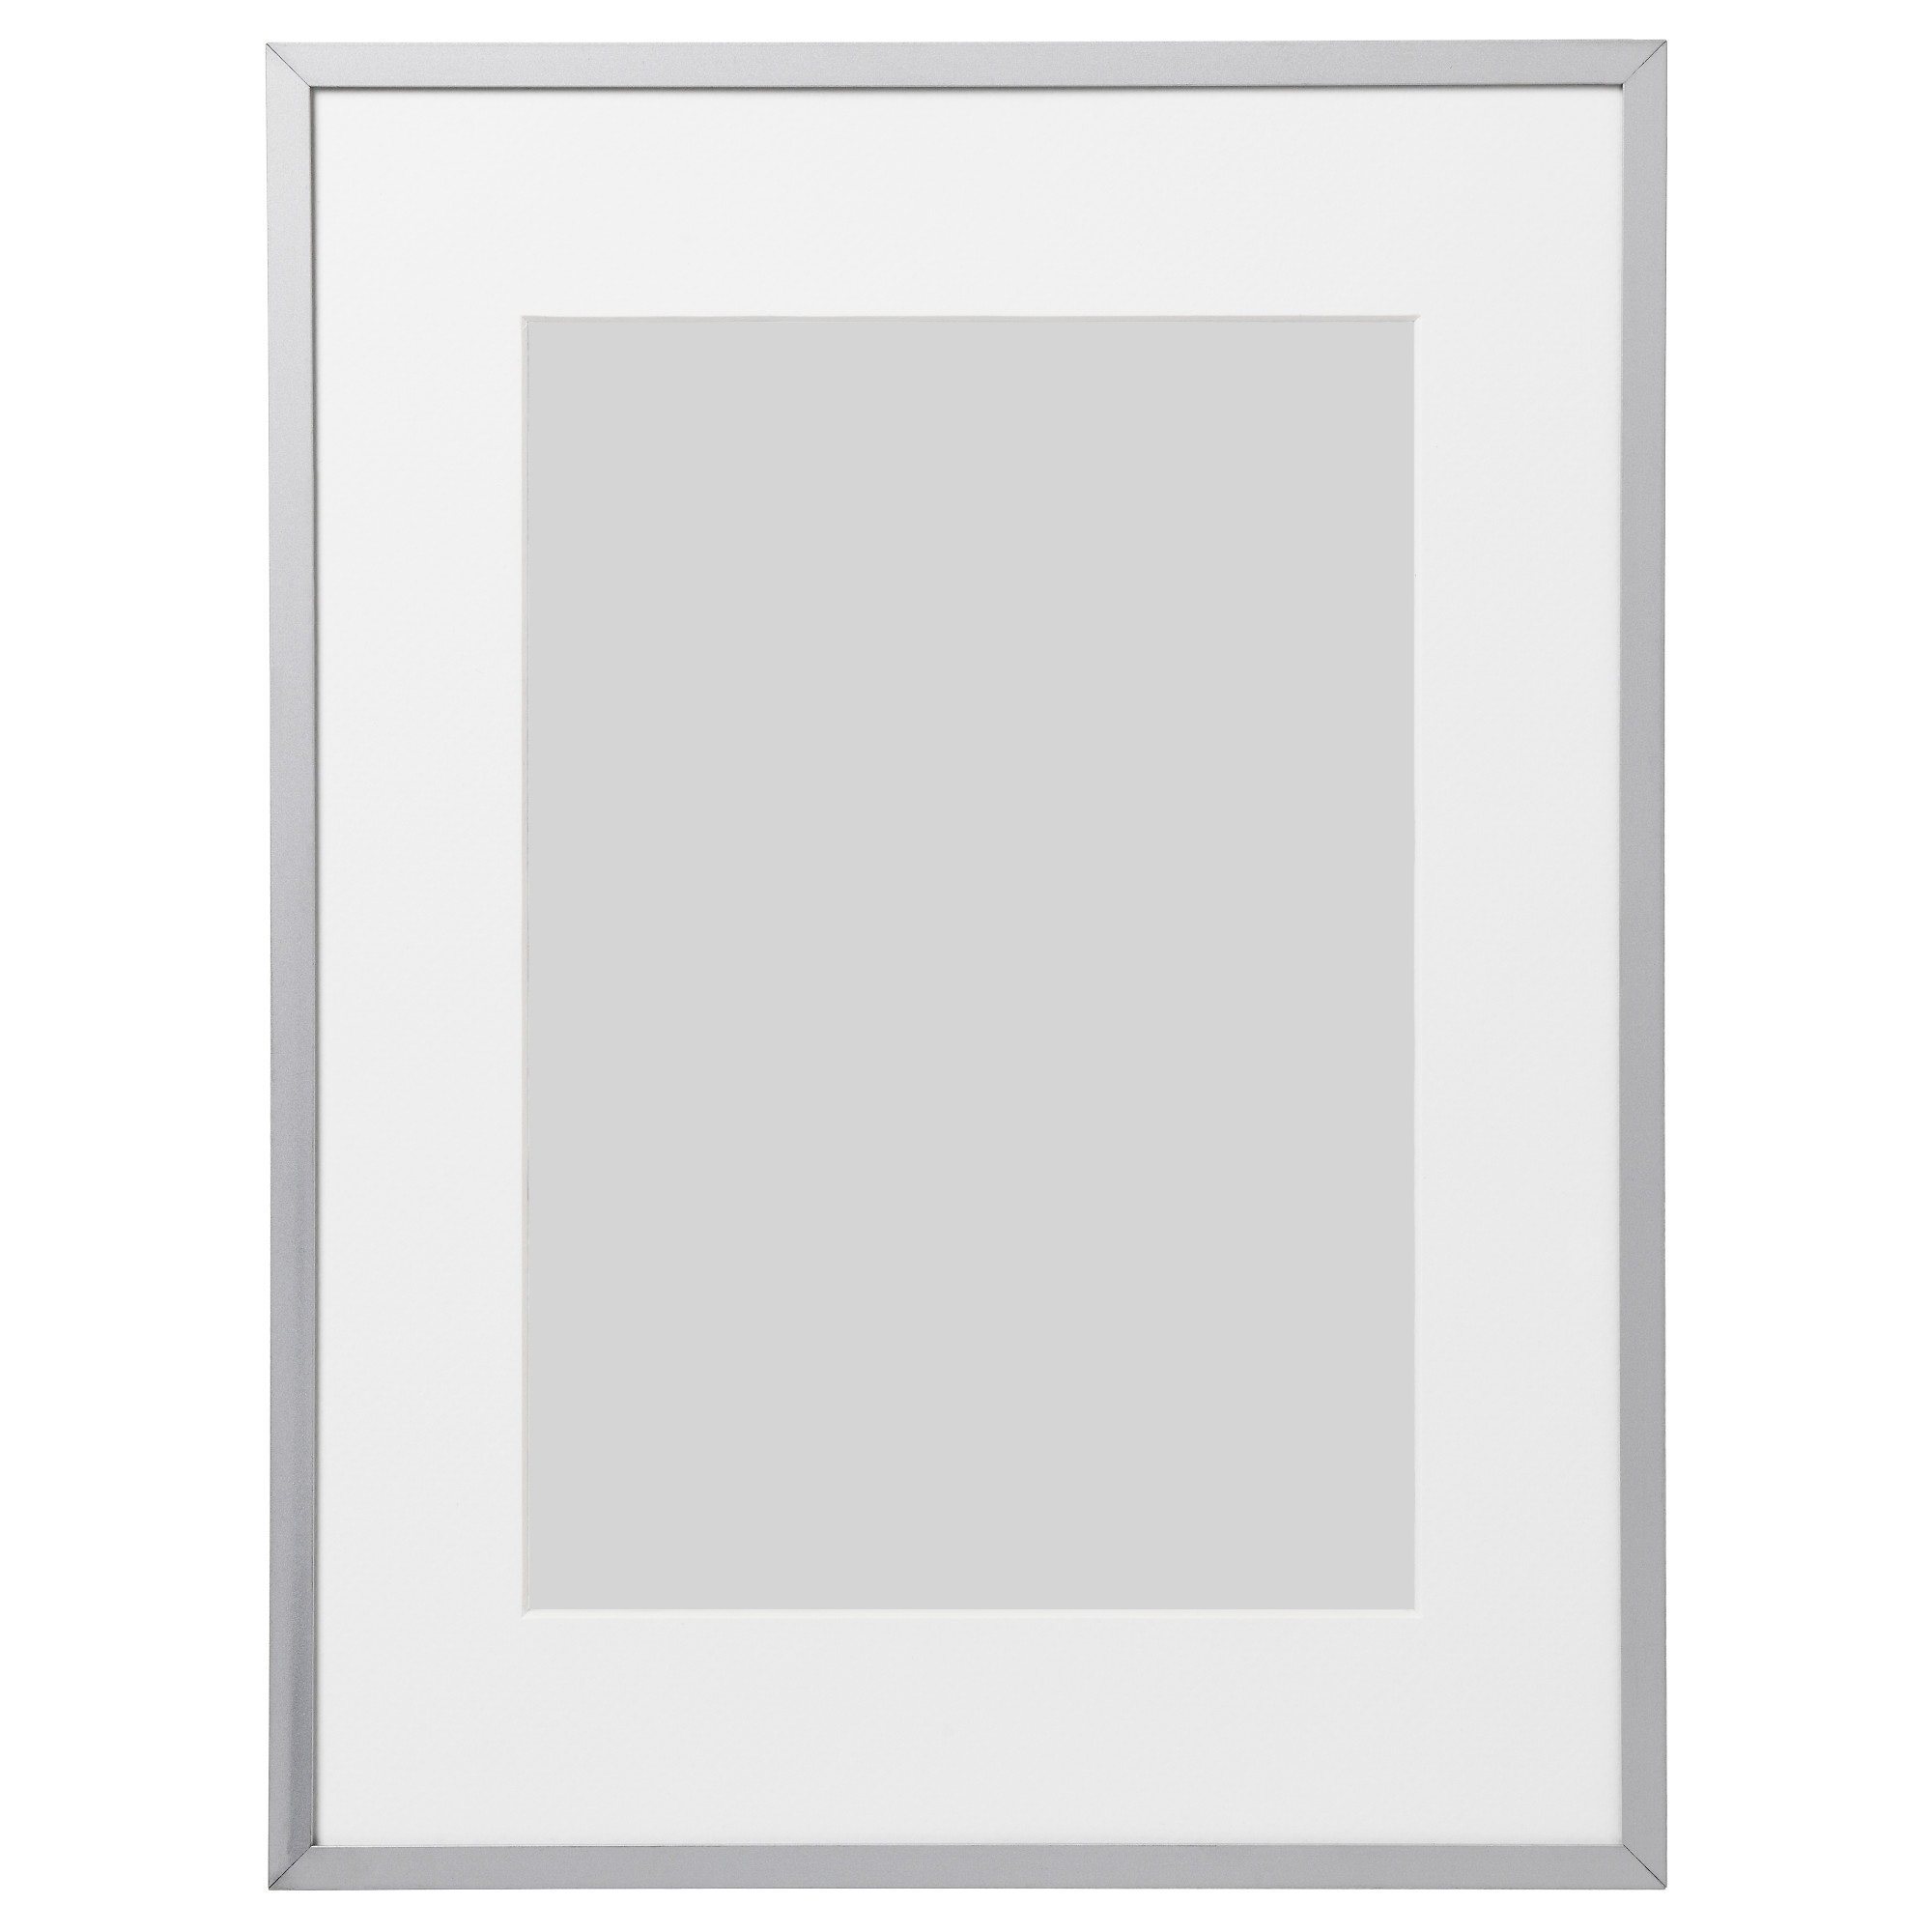 inter ikea systems bv 1999 2017 privacy policy - White Frame